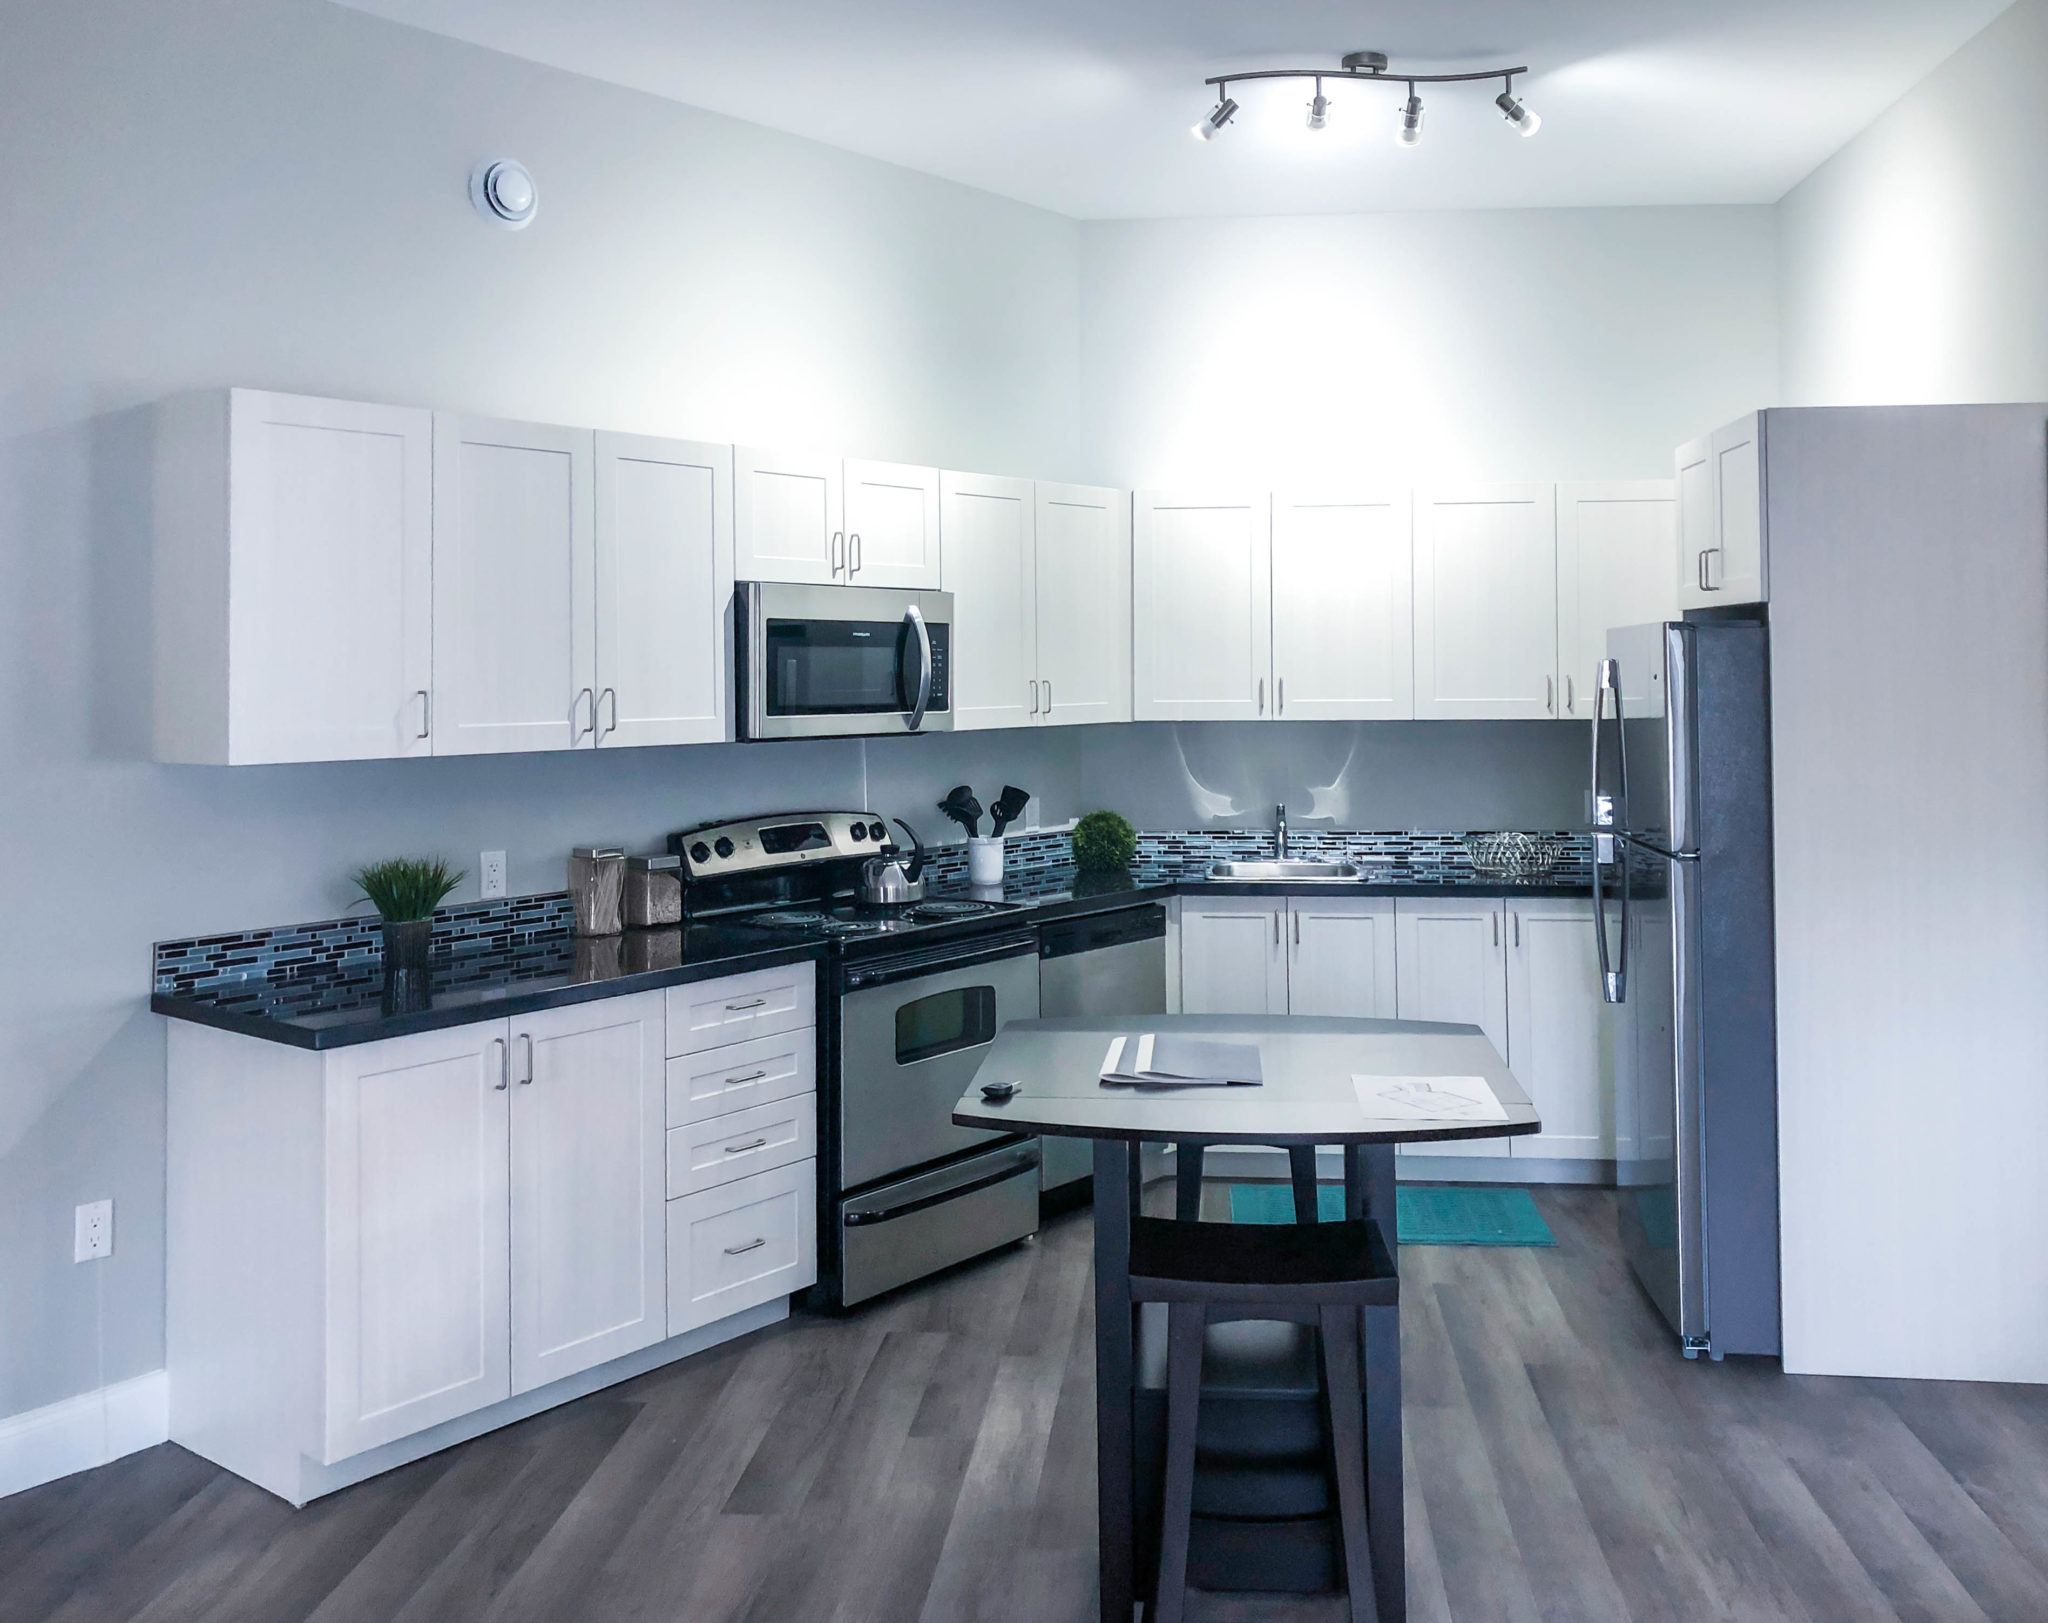 6Thirty-Model-Suite-Kitchen2